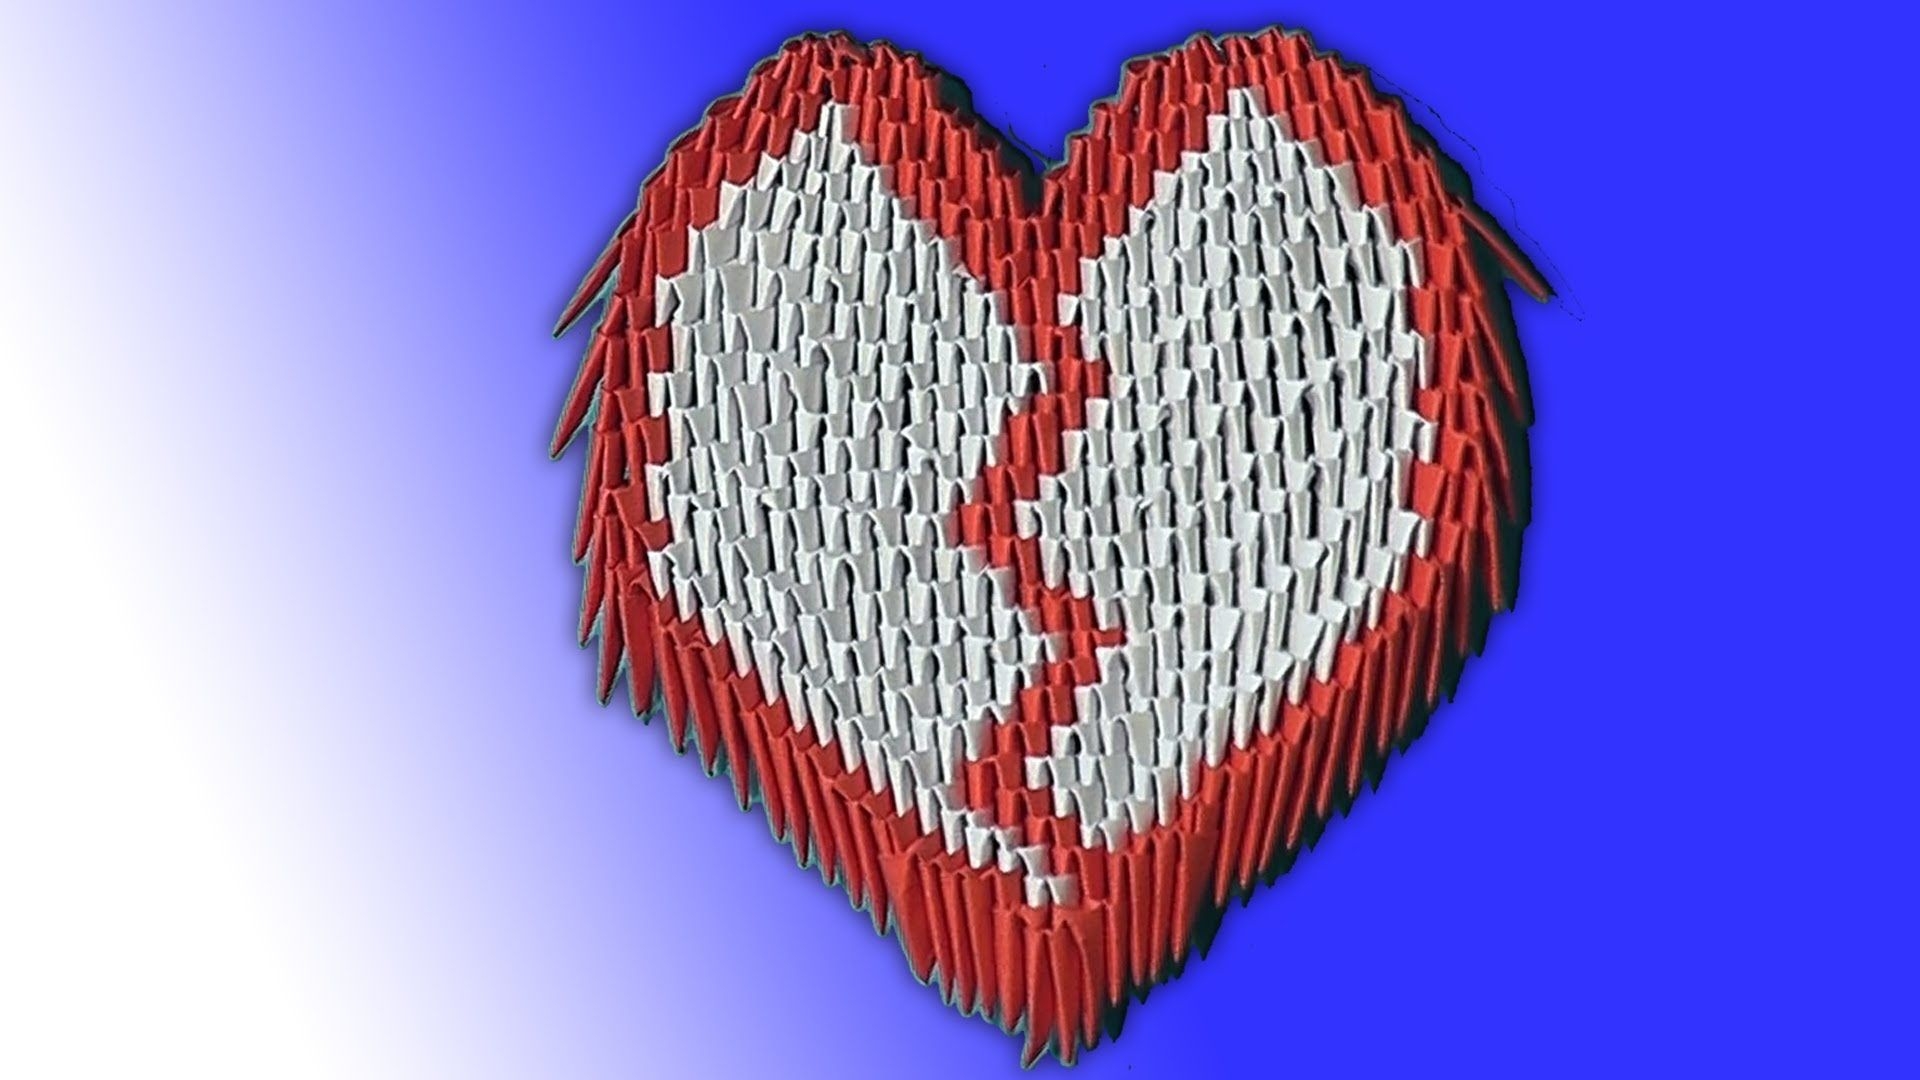 How to make the heart valentine 3d origami modular origami for how to make the heart valentine 3d origami modular origami for beginners jeuxipadfo Image collections